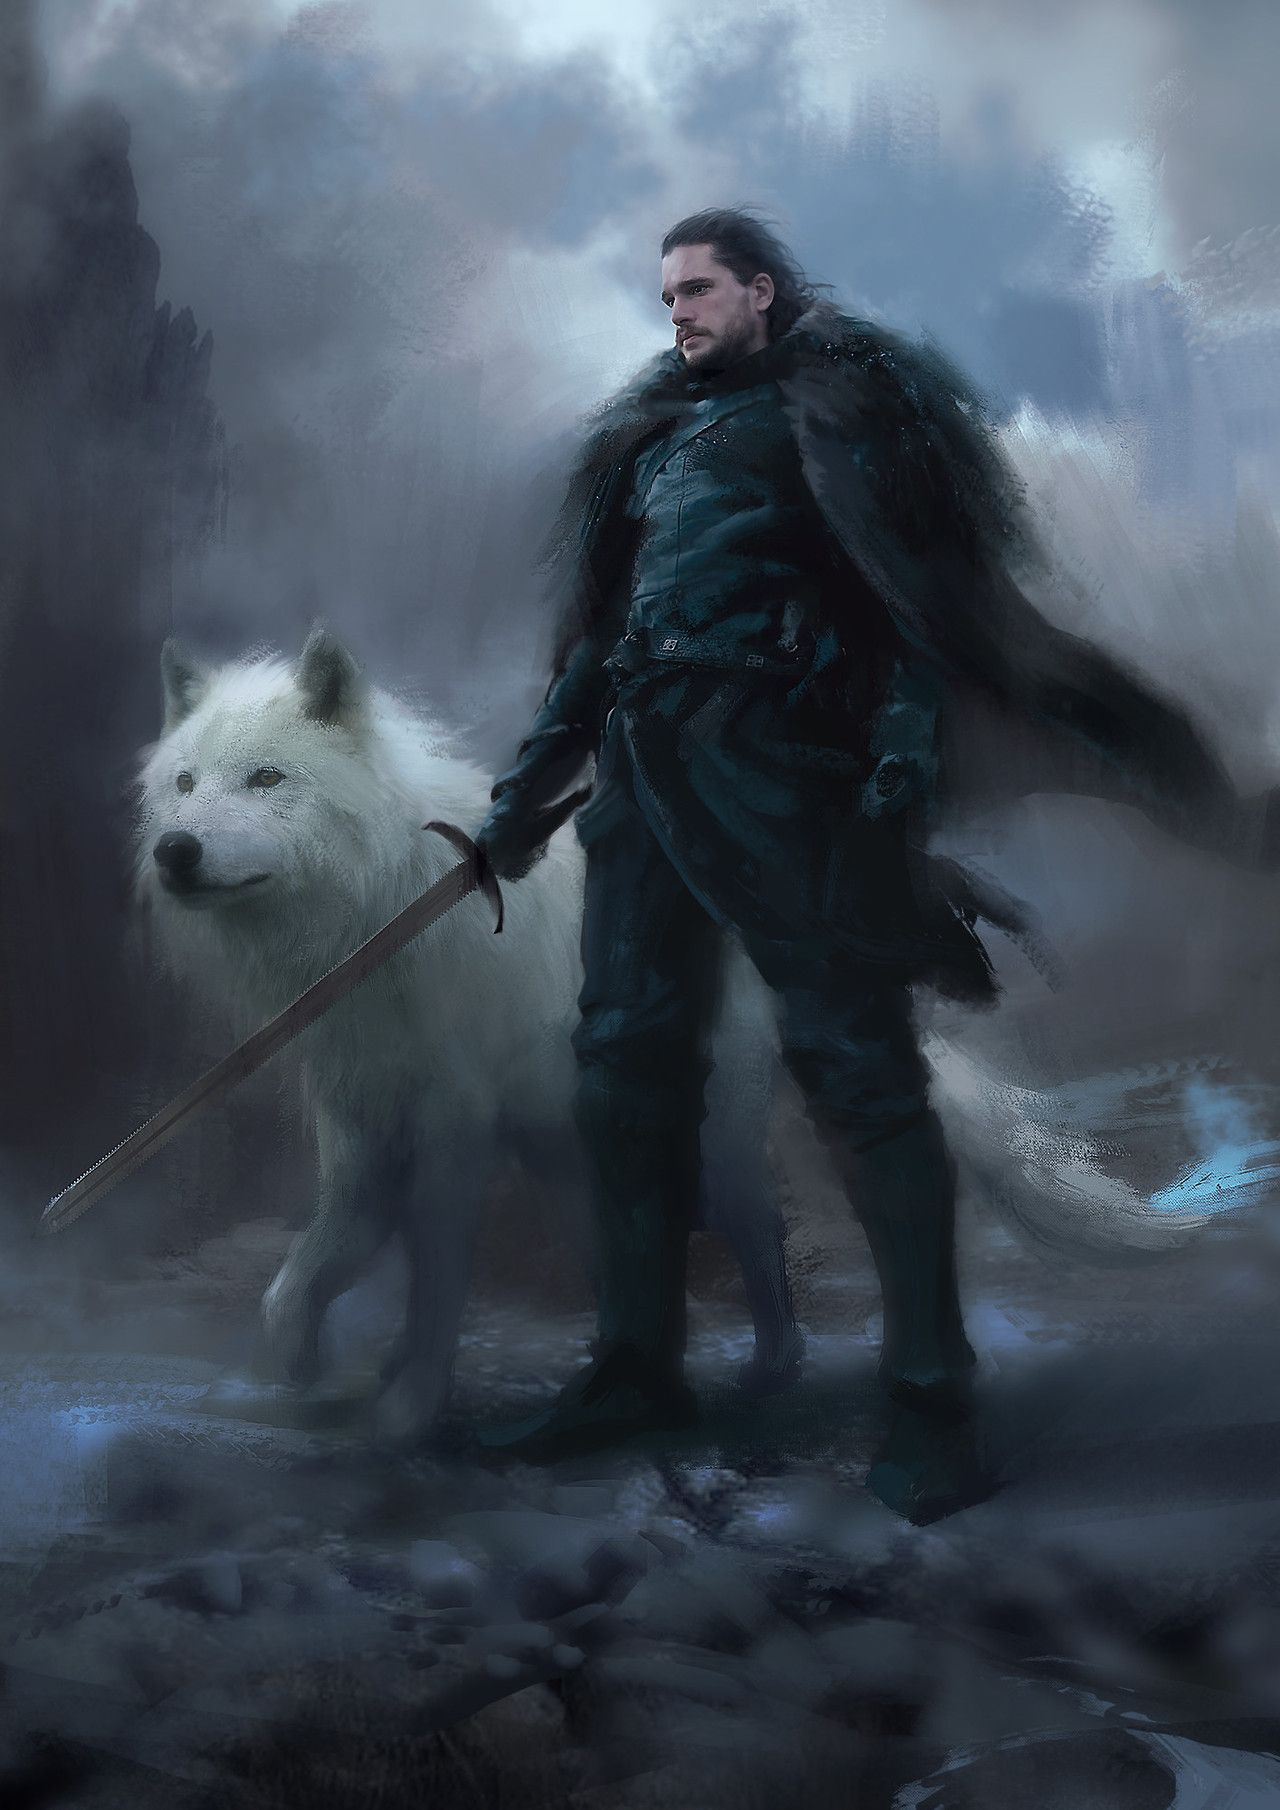 john-snow-game-of-thrones-wallpaper-mobile